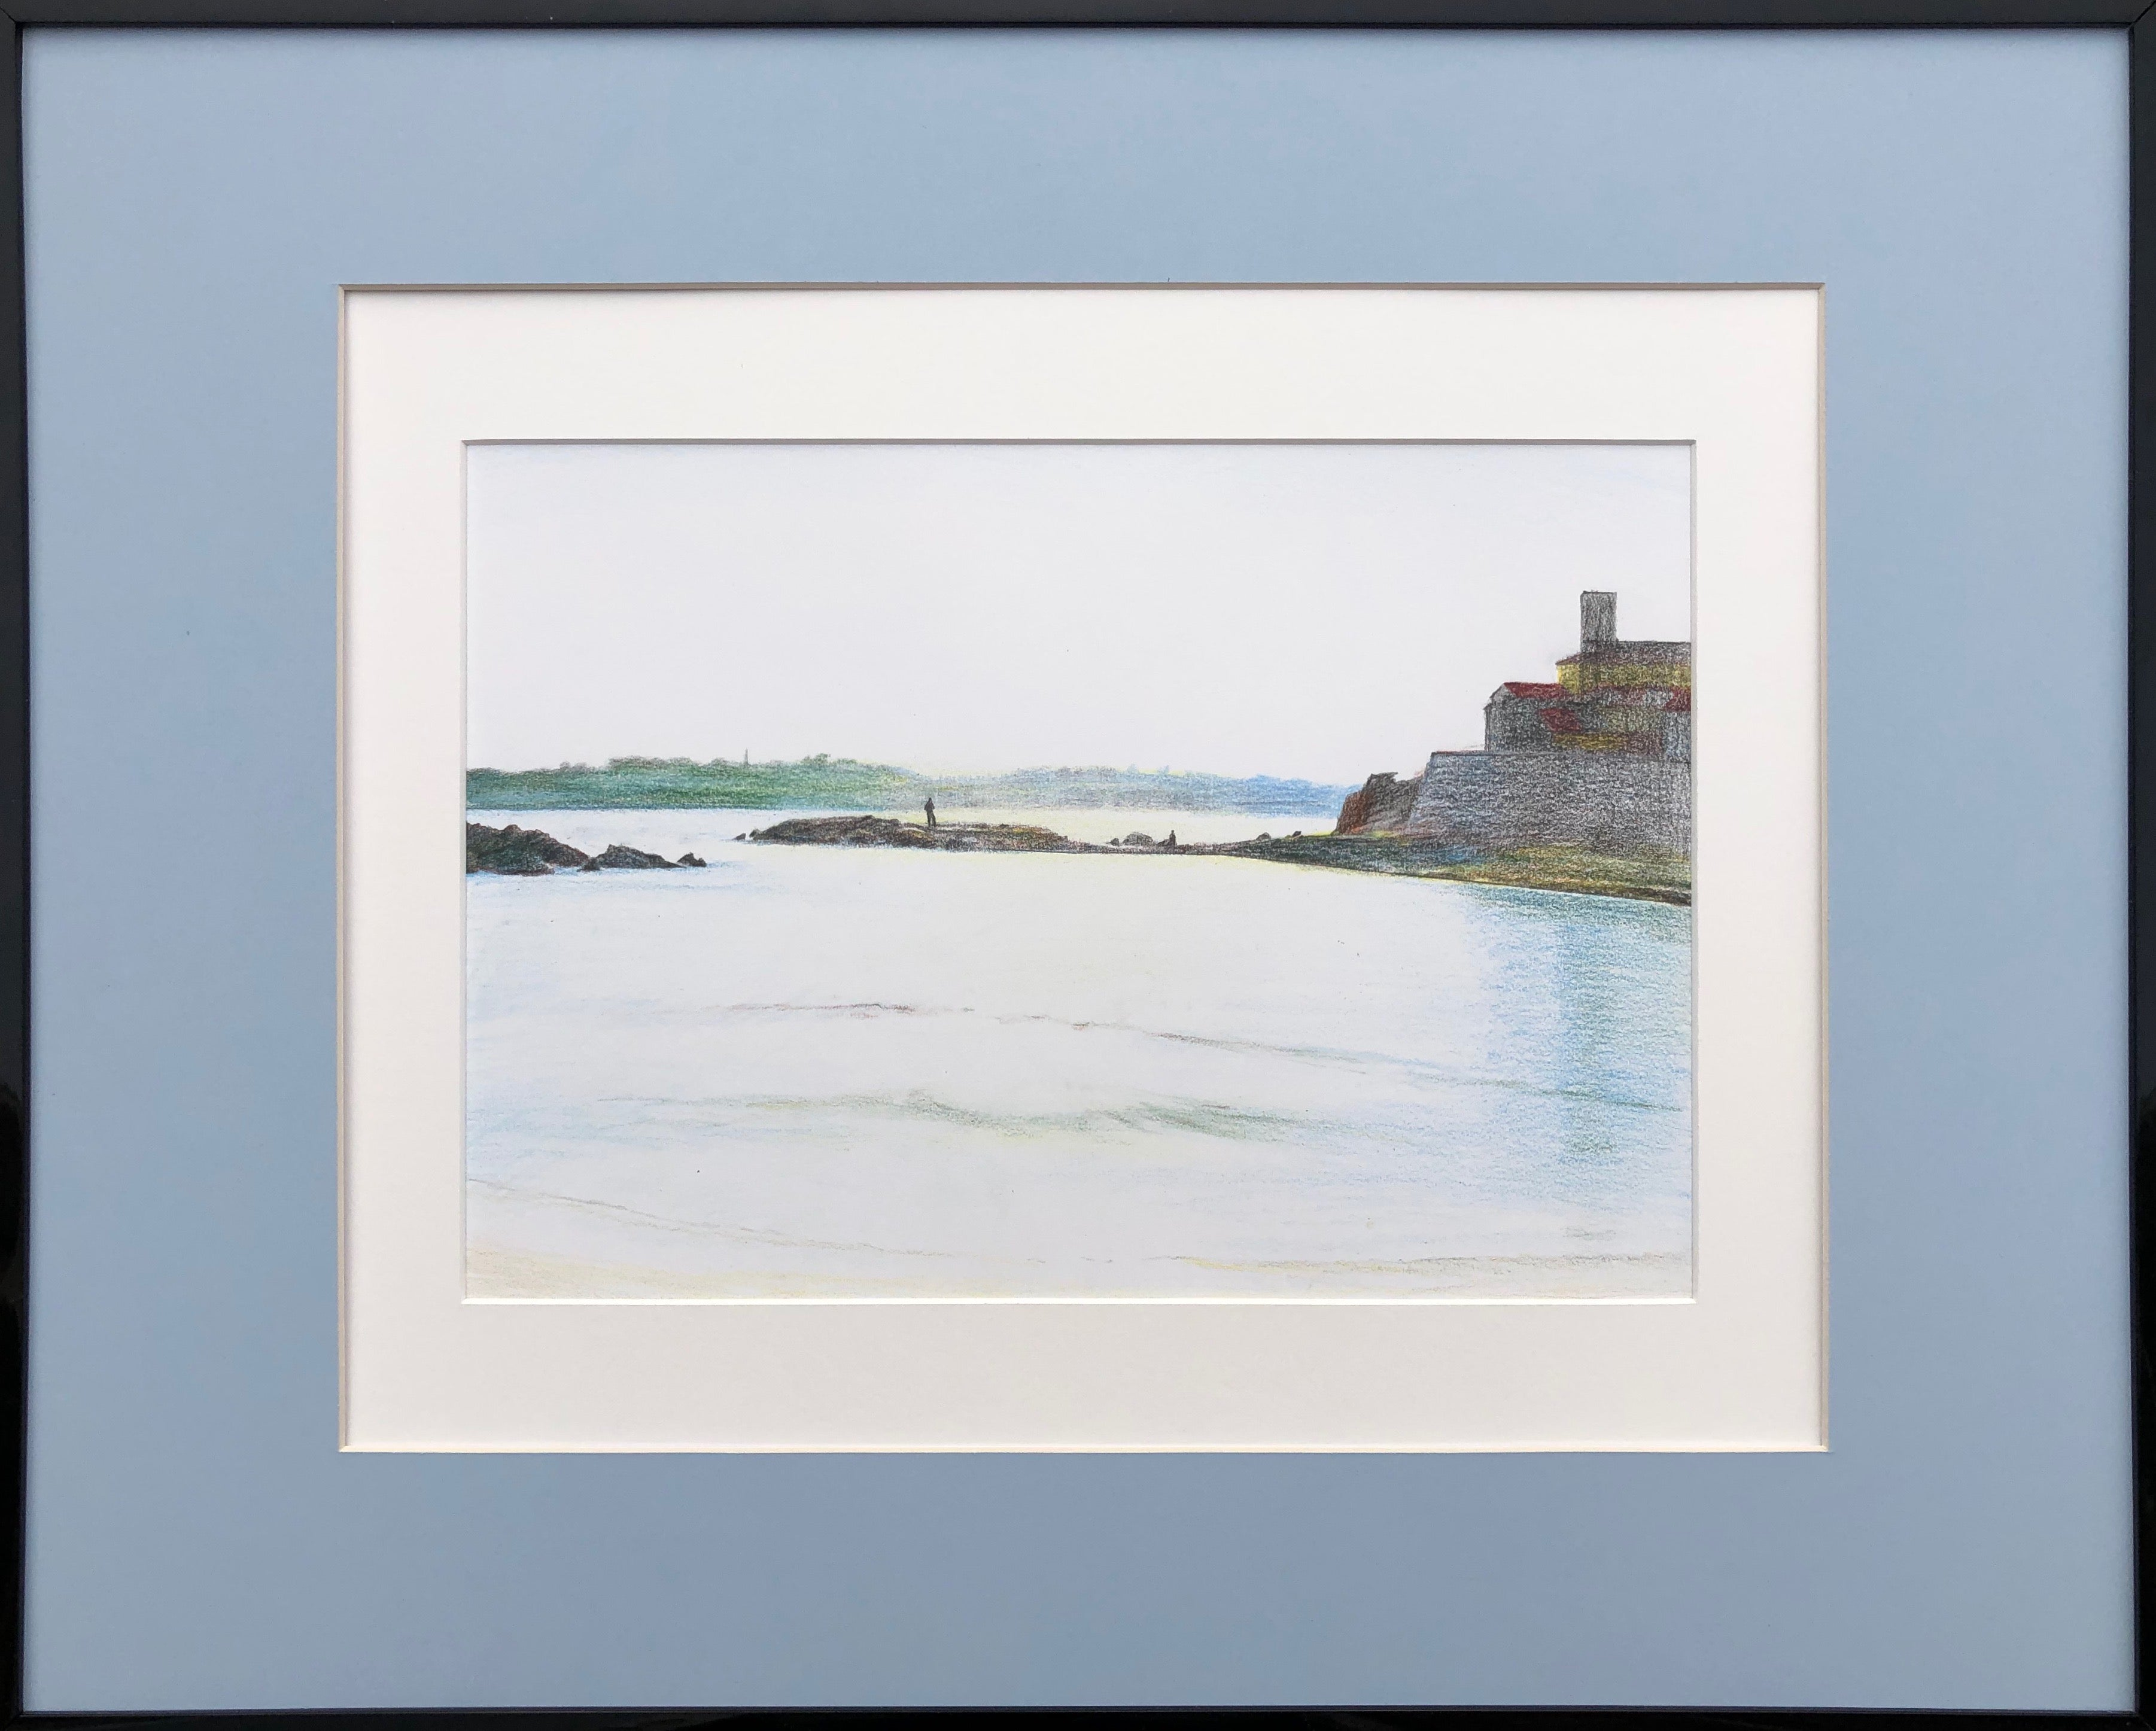 Antibes (France)-seascape made in grey, green, blue, white color